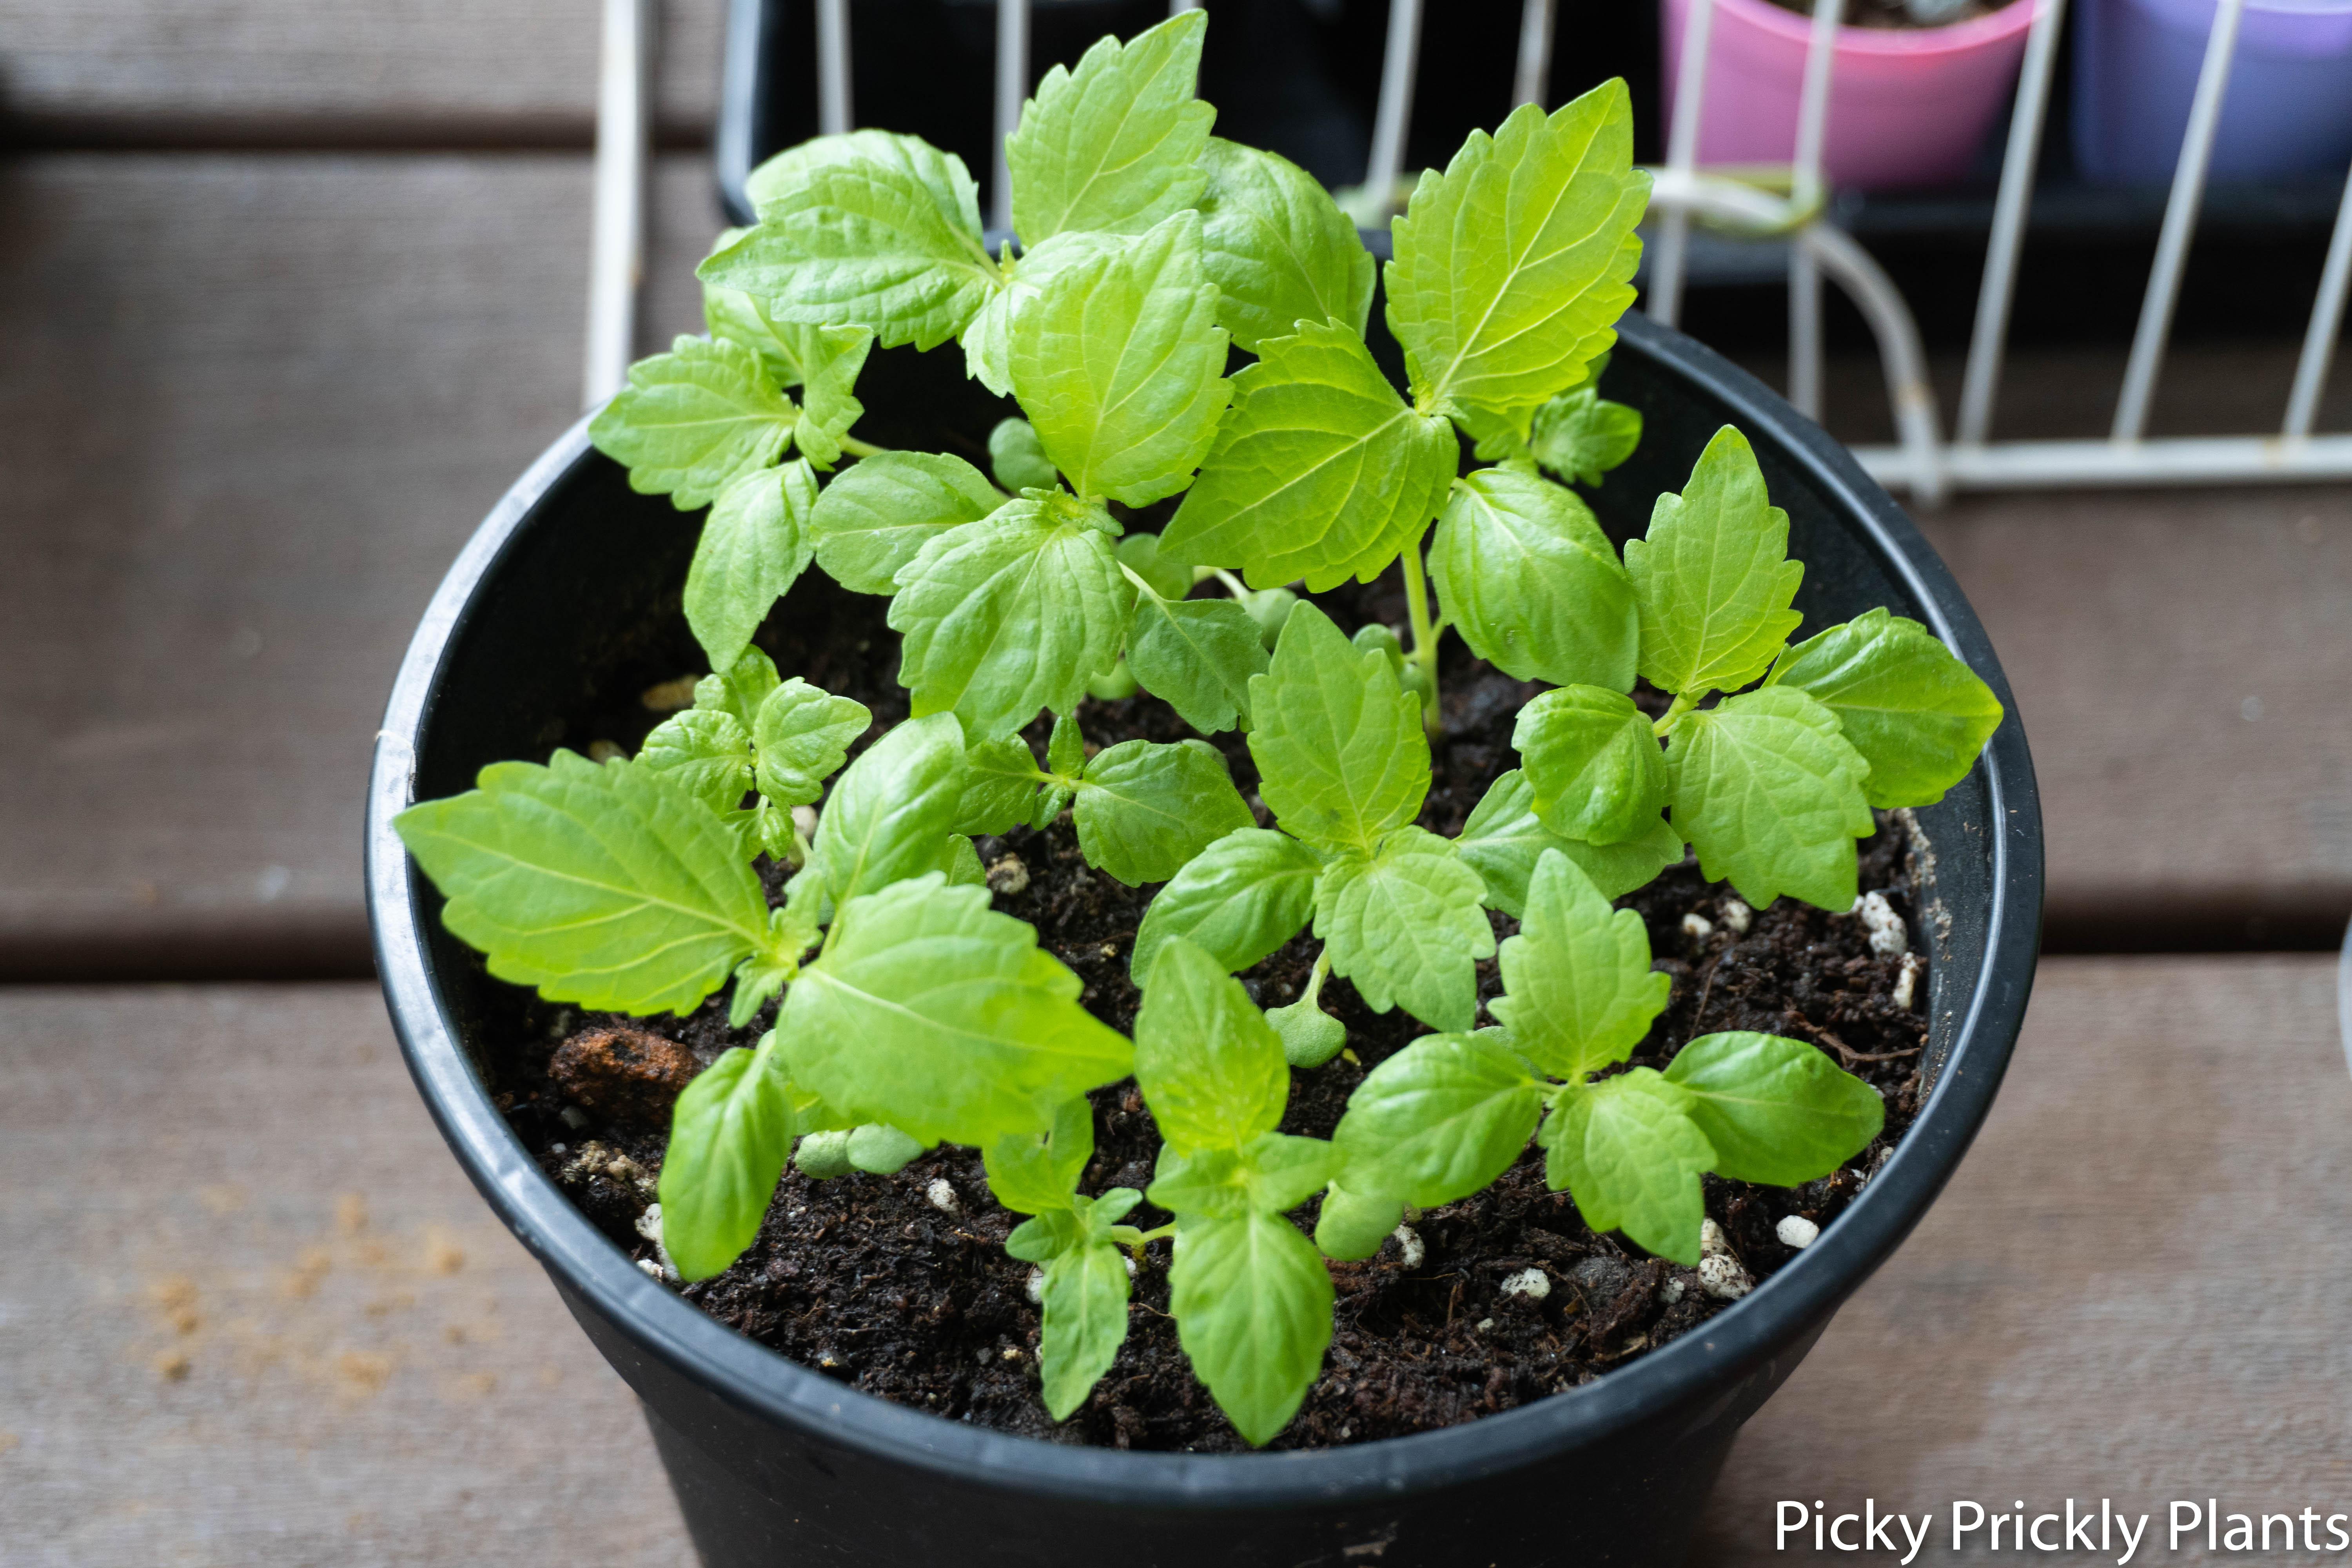 Shiso plant seedlings germinated with hb101 for 26 days